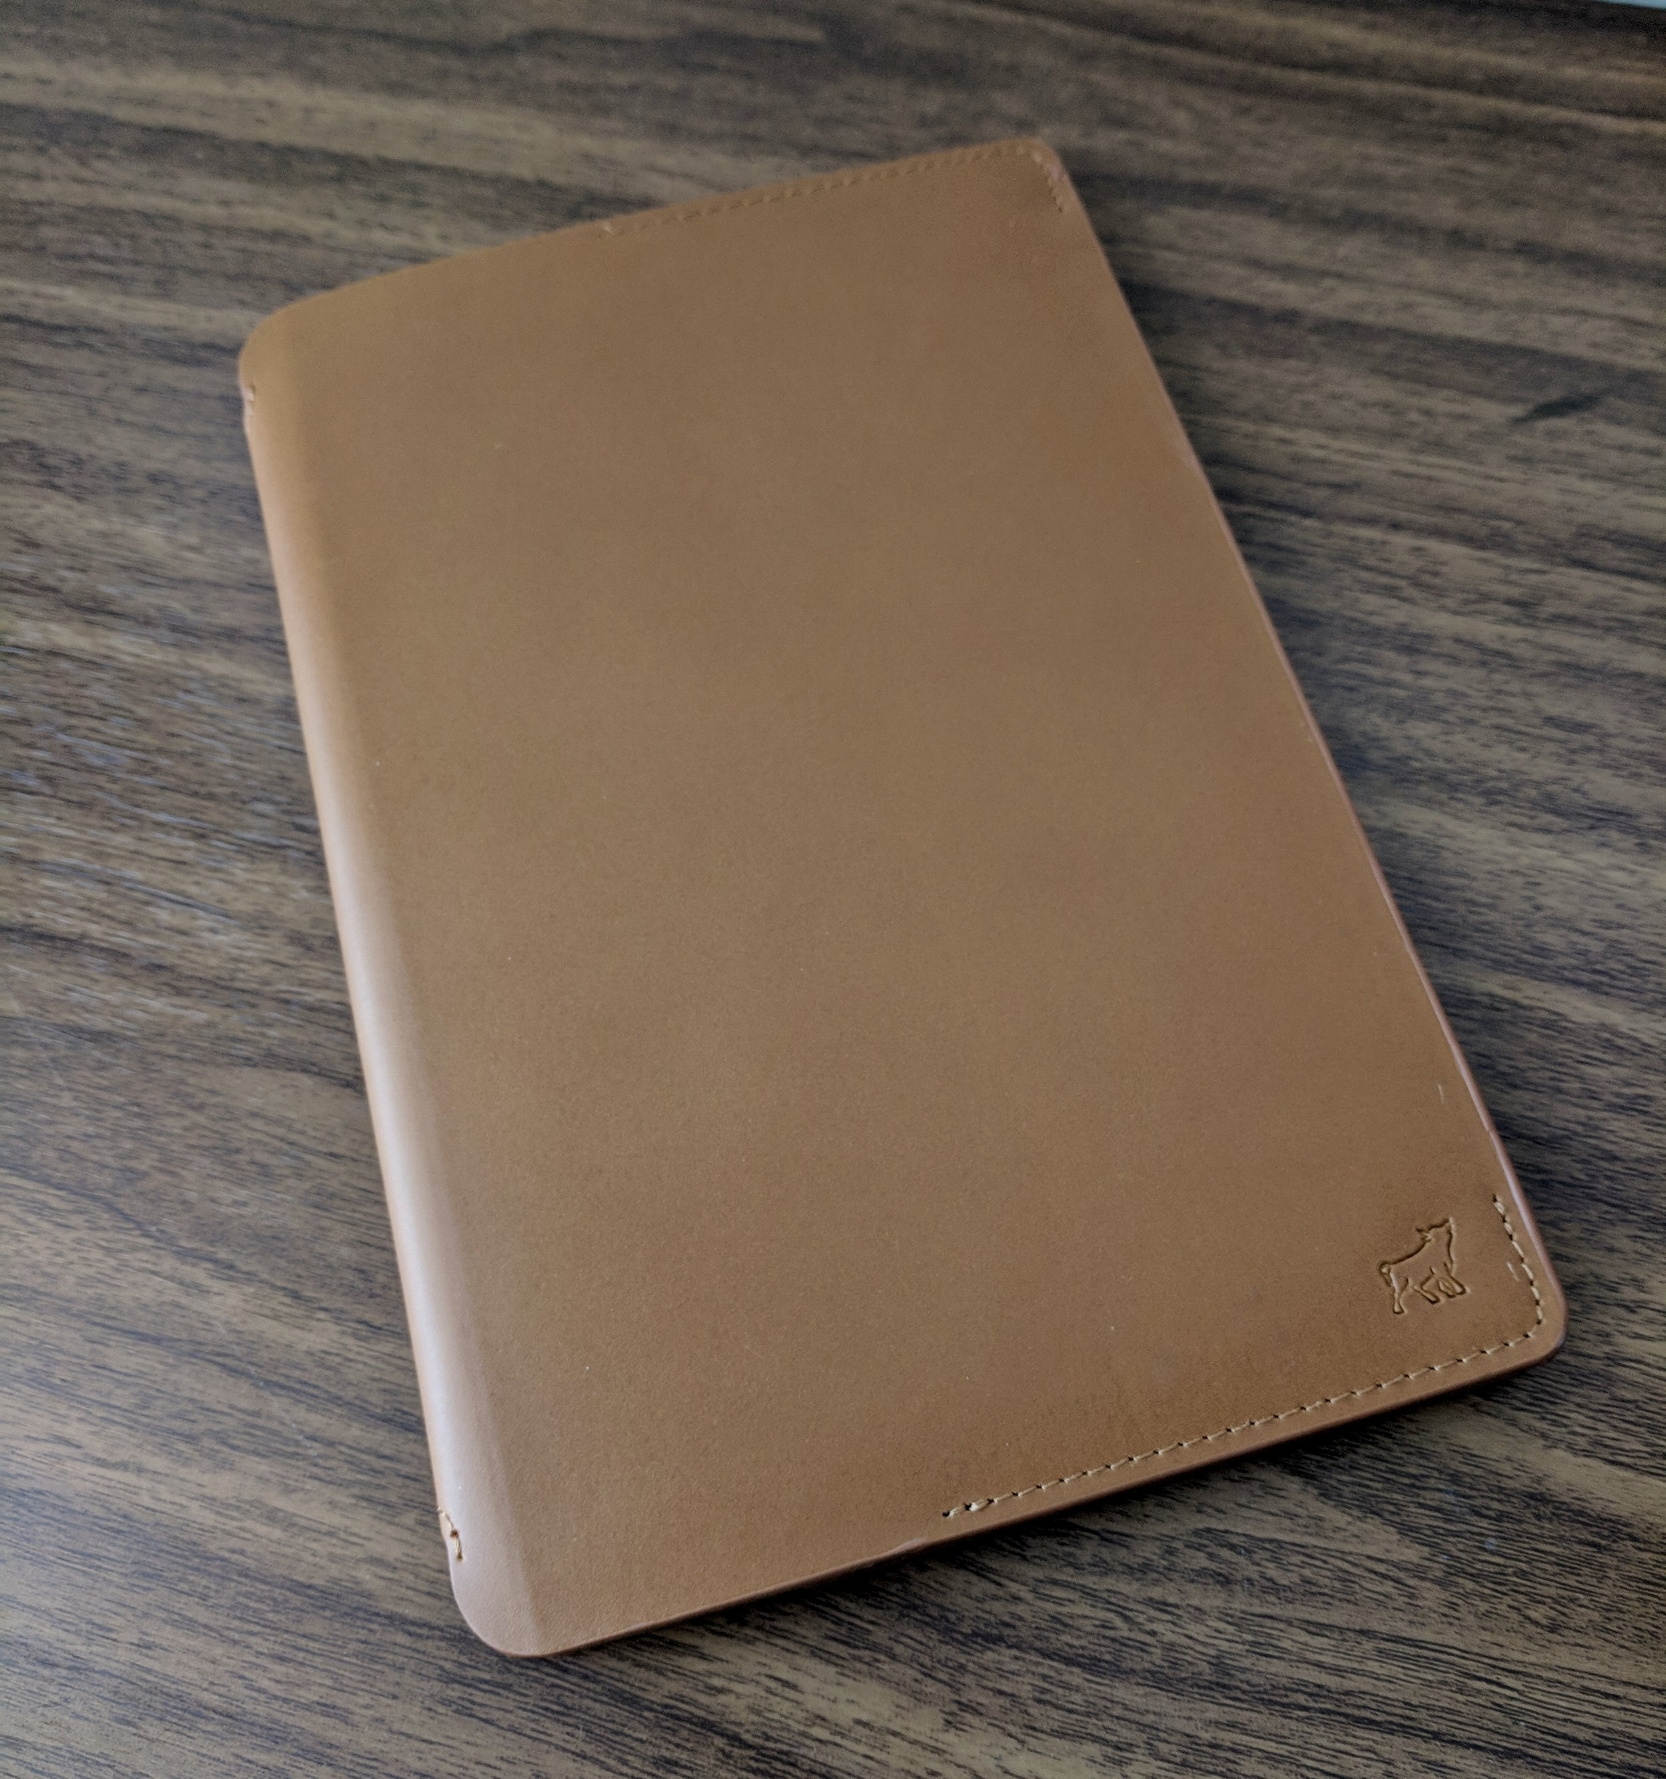 The leather - both outside and in - is a huge upgrade on the new Bull & Stash Notebook.